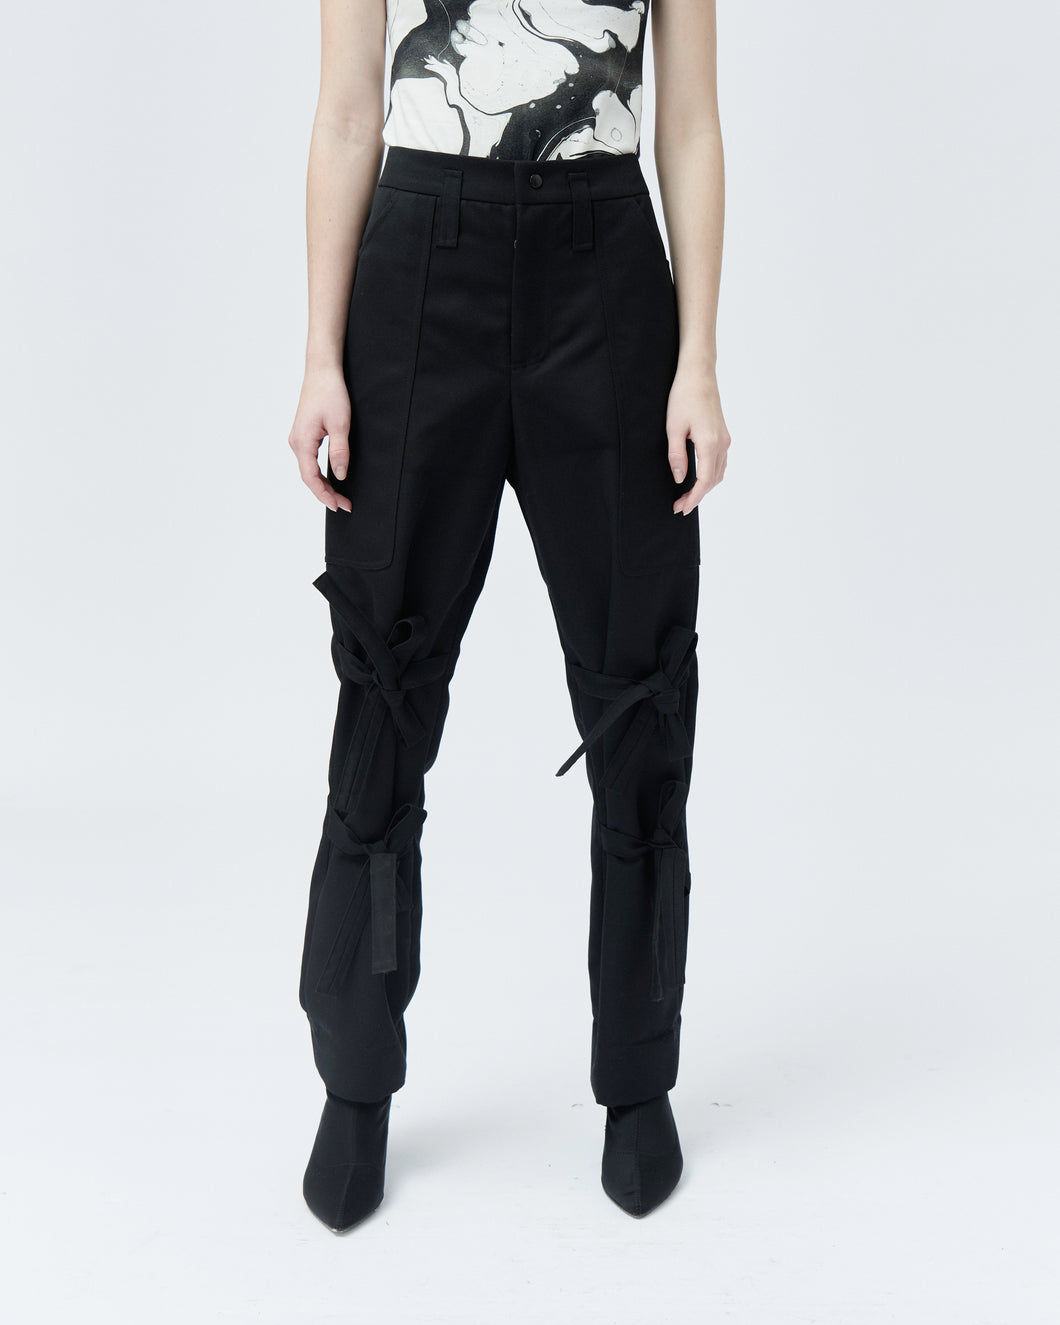 BETTY TAILORED TROUSERS WITH BOWS, black